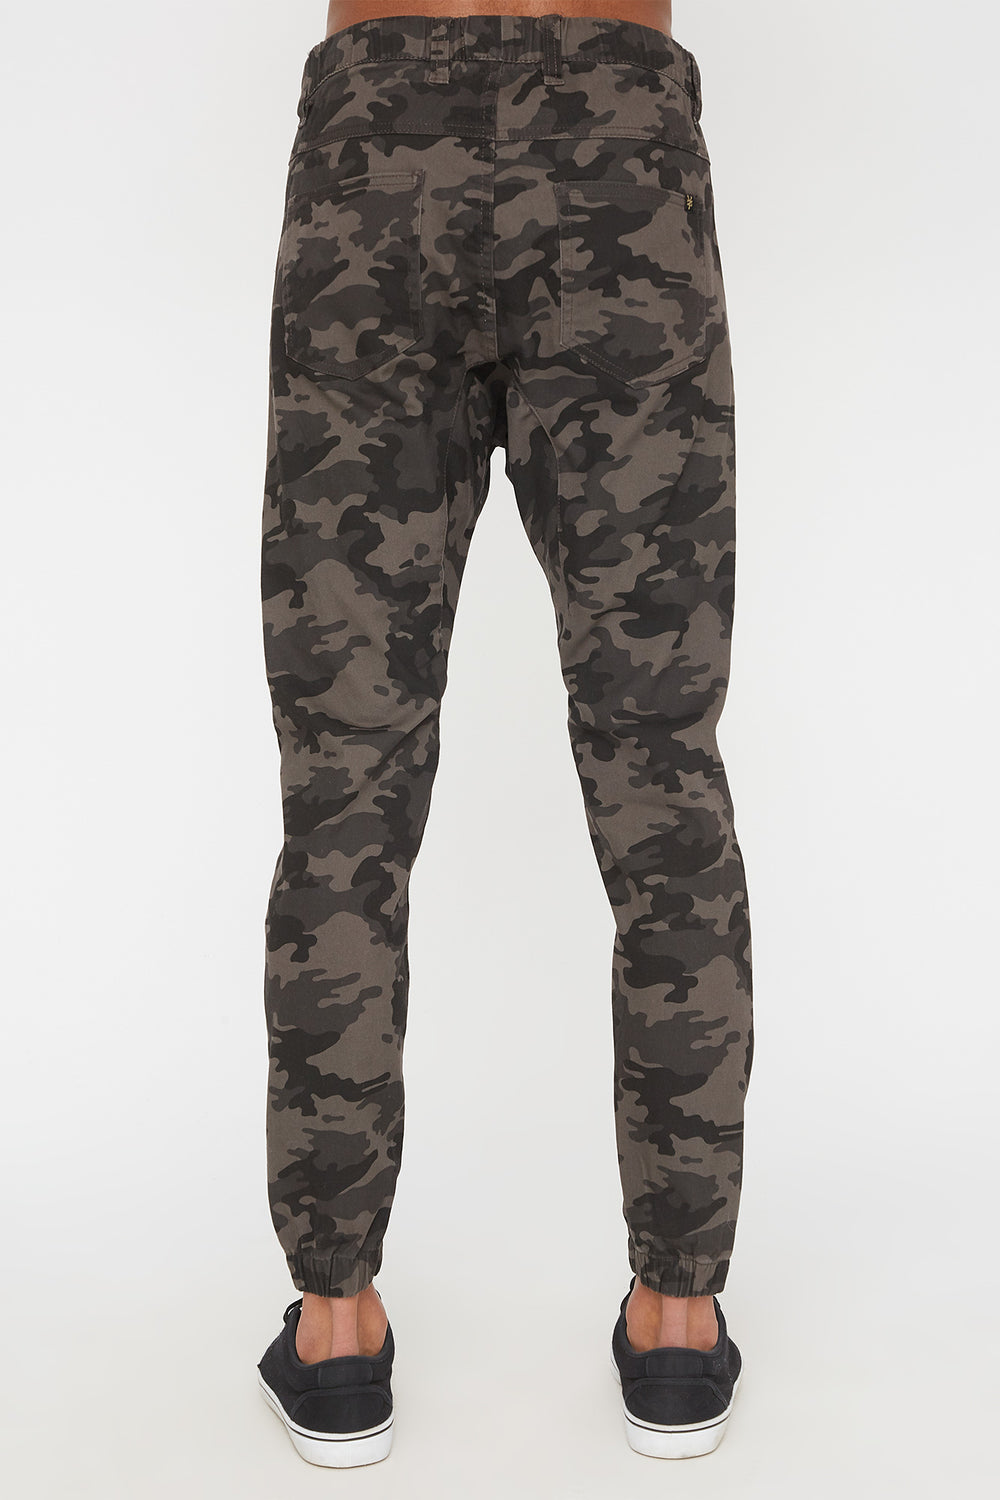 Zoo York Mens 5-Pocket Camo Jogger Gingham